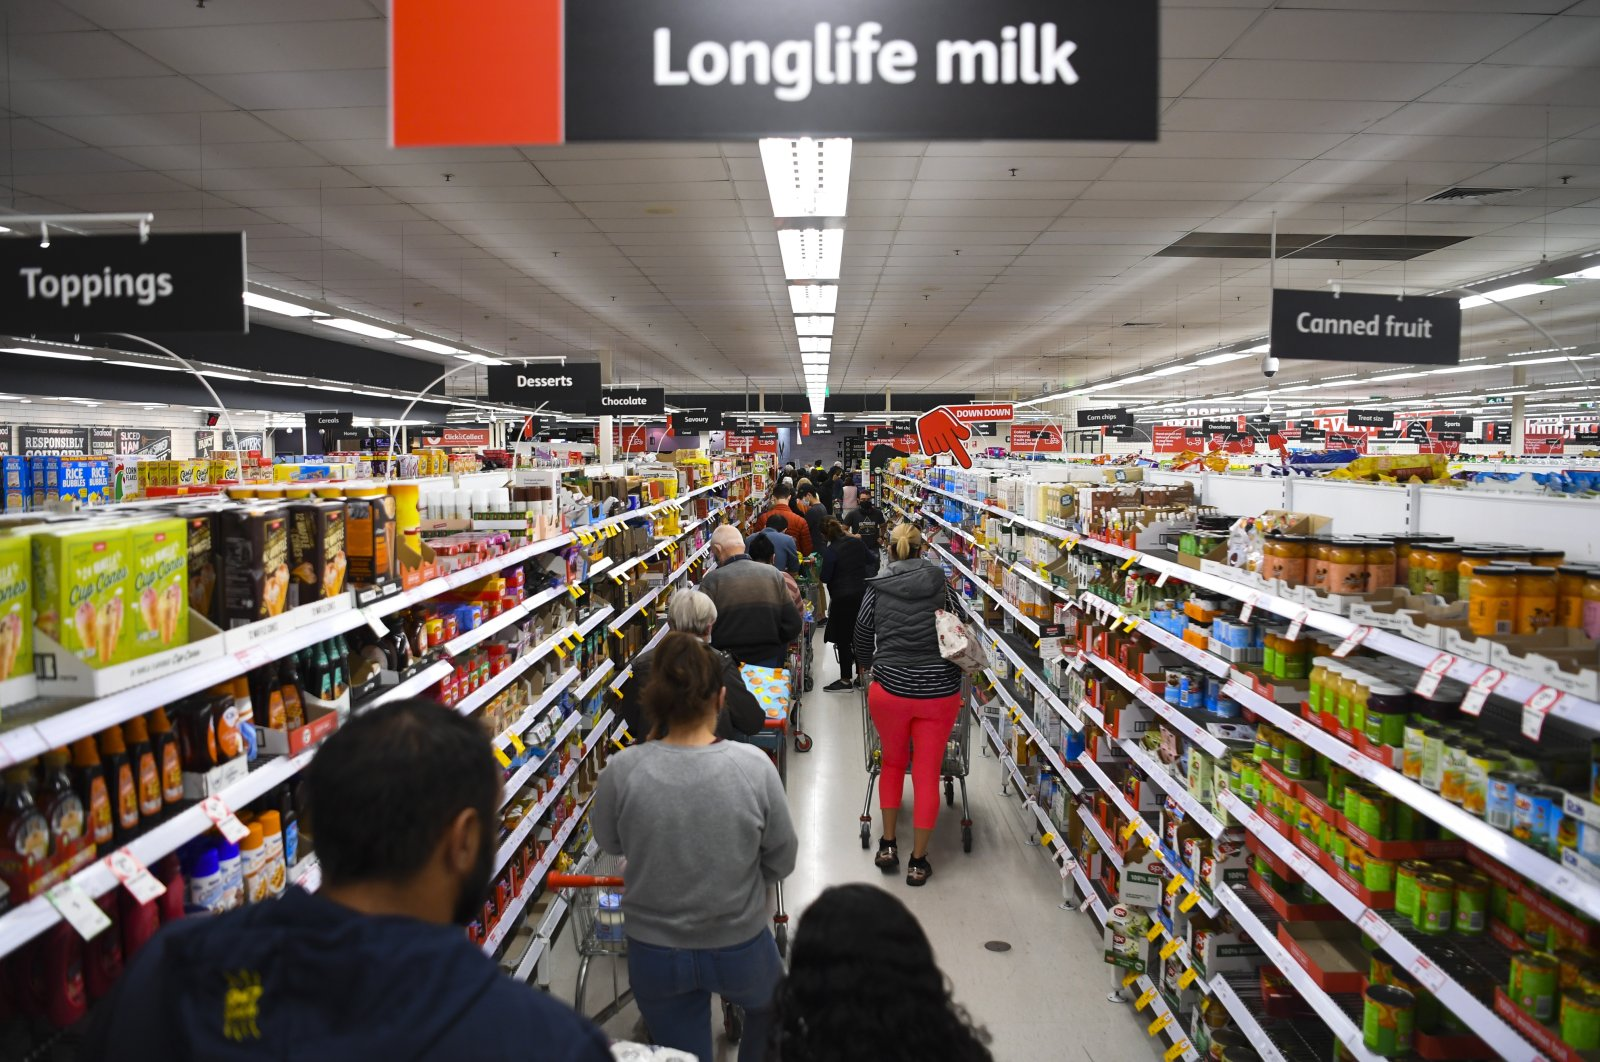 Customers stand in long lines at a check out counter at a Coles supermarket in the Woden area in Canberra, Australia, Aug. 12, 2021. (EPA Photo)